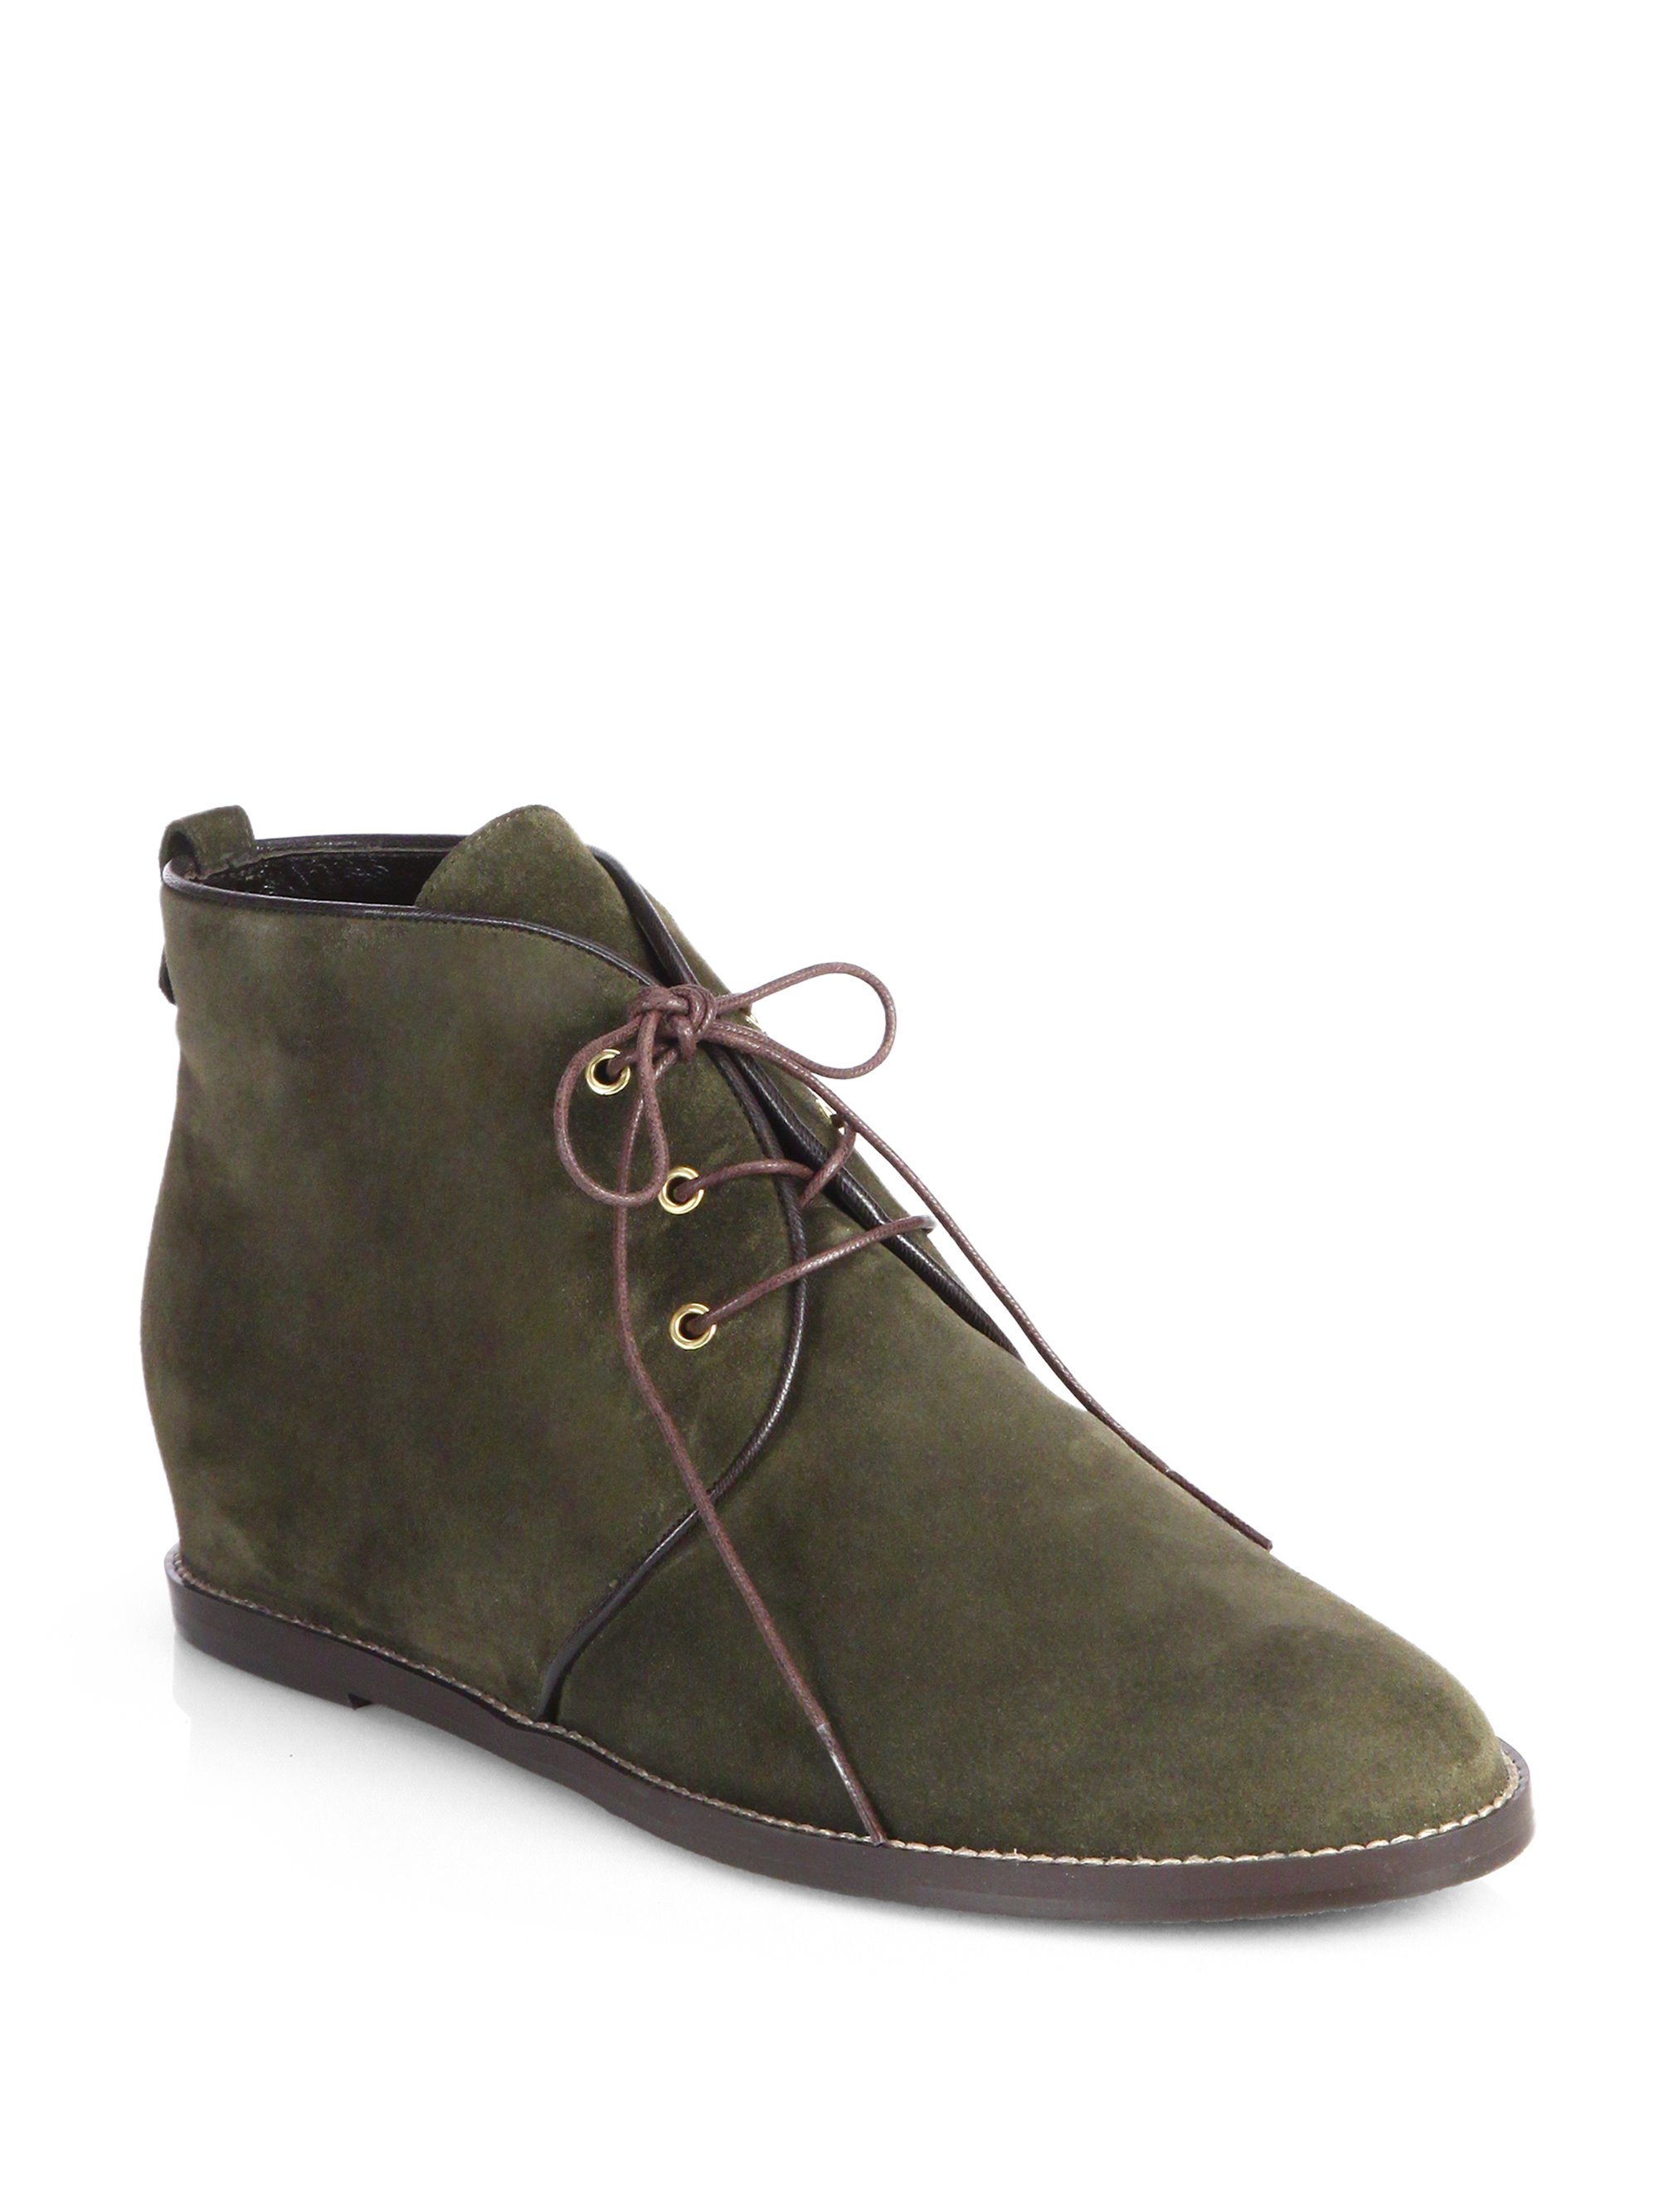 stuart weitzman rove suede wedge ankle boots in green lyst